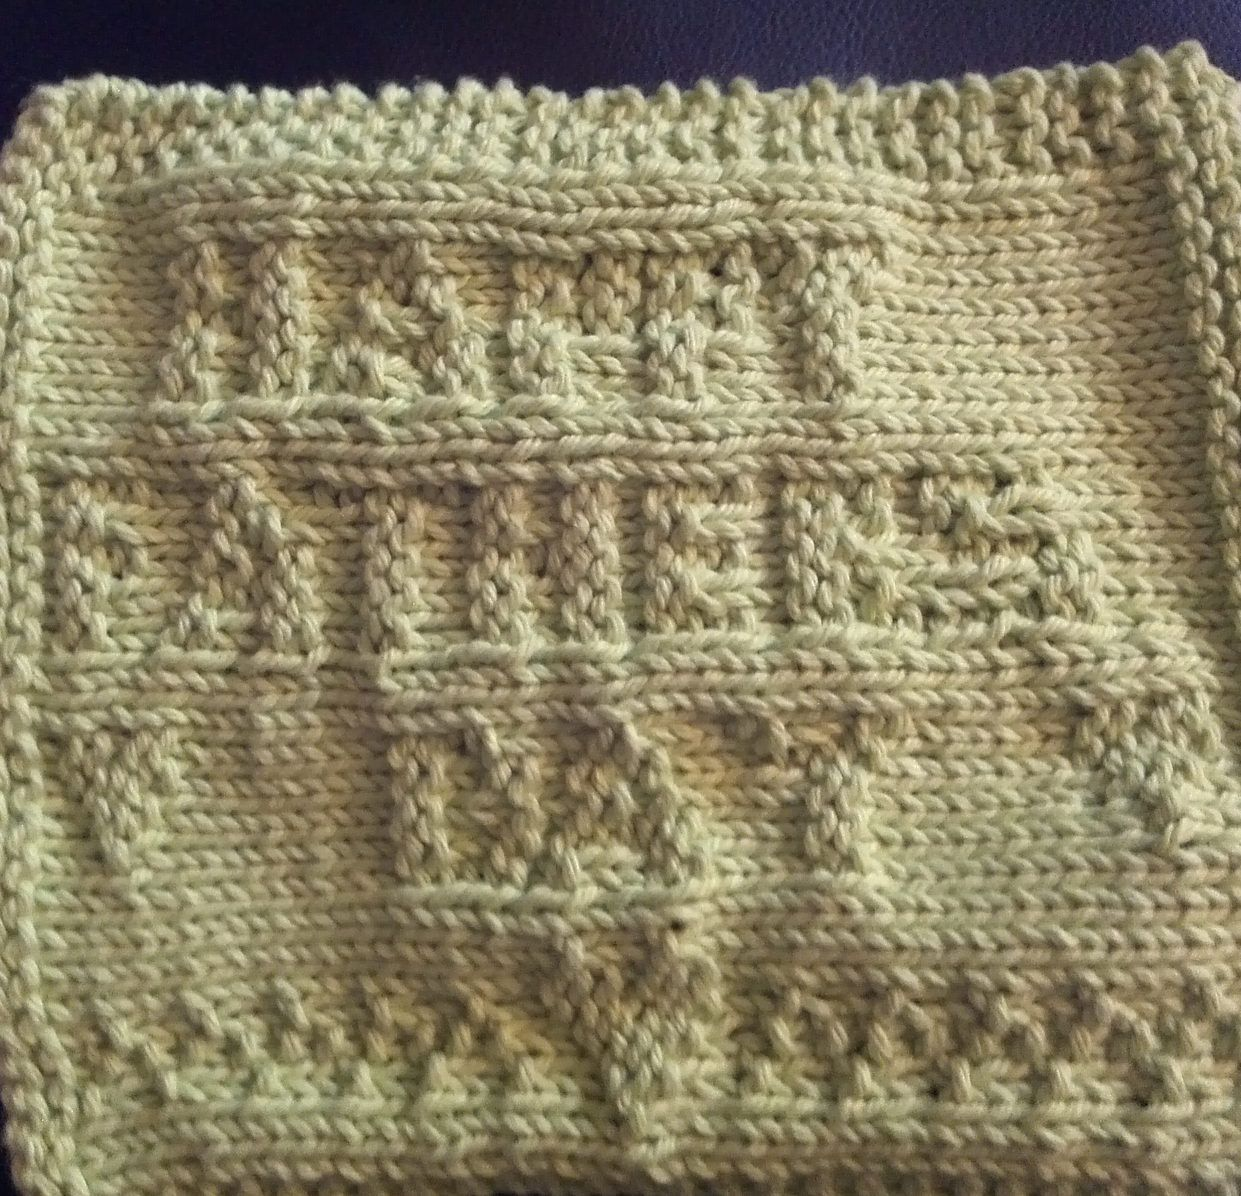 Free knitting pattern for happy fathers day cloth an easy wash free knitting pattern for happy fathers day cloth an easy wash cloth forms its message as it is knit sideways suitable for beginners bankloansurffo Choice Image